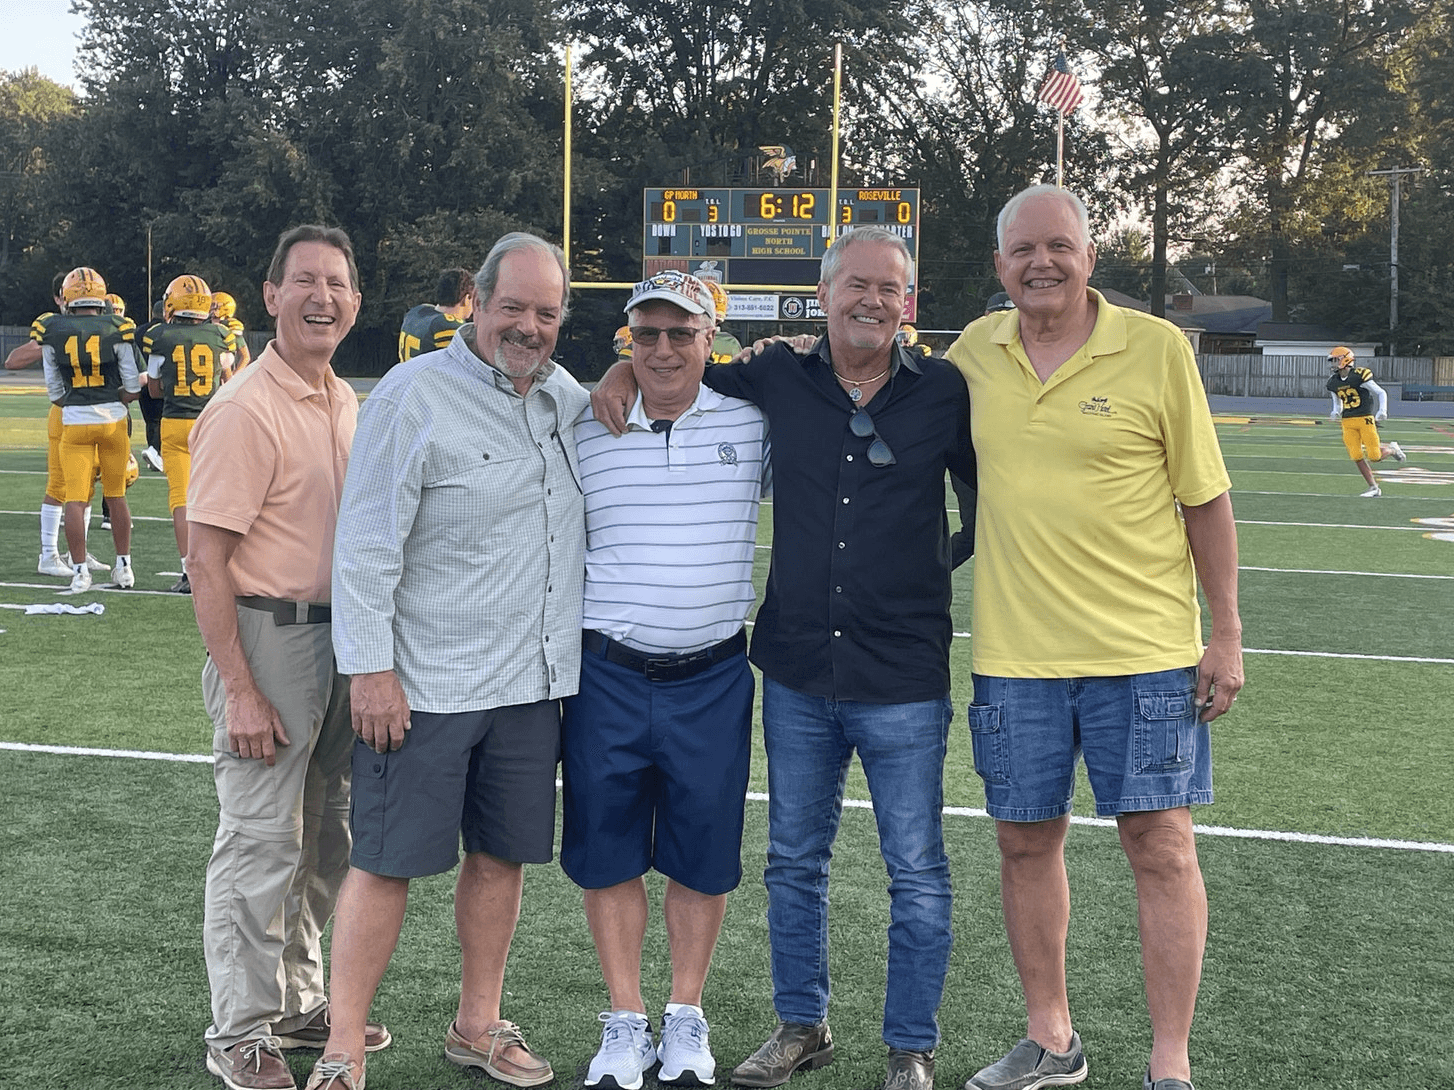 Football Teammates - Grosse Pointe North, Class of 1971